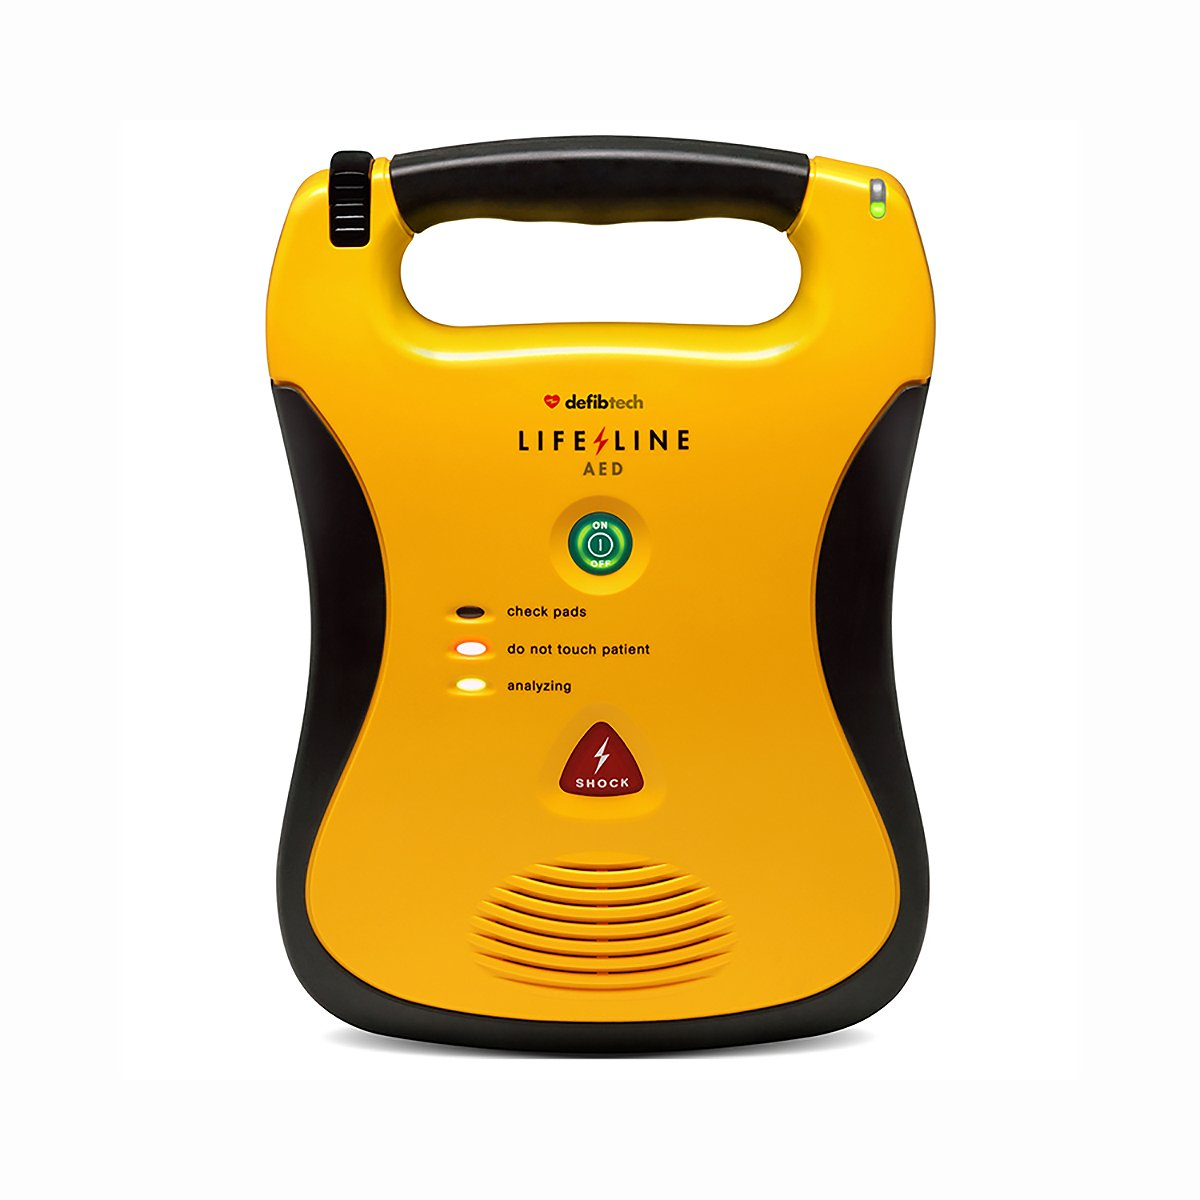 Lifeline AED Semi-Automatic Defibrillator with a High Capacity Battery Pack